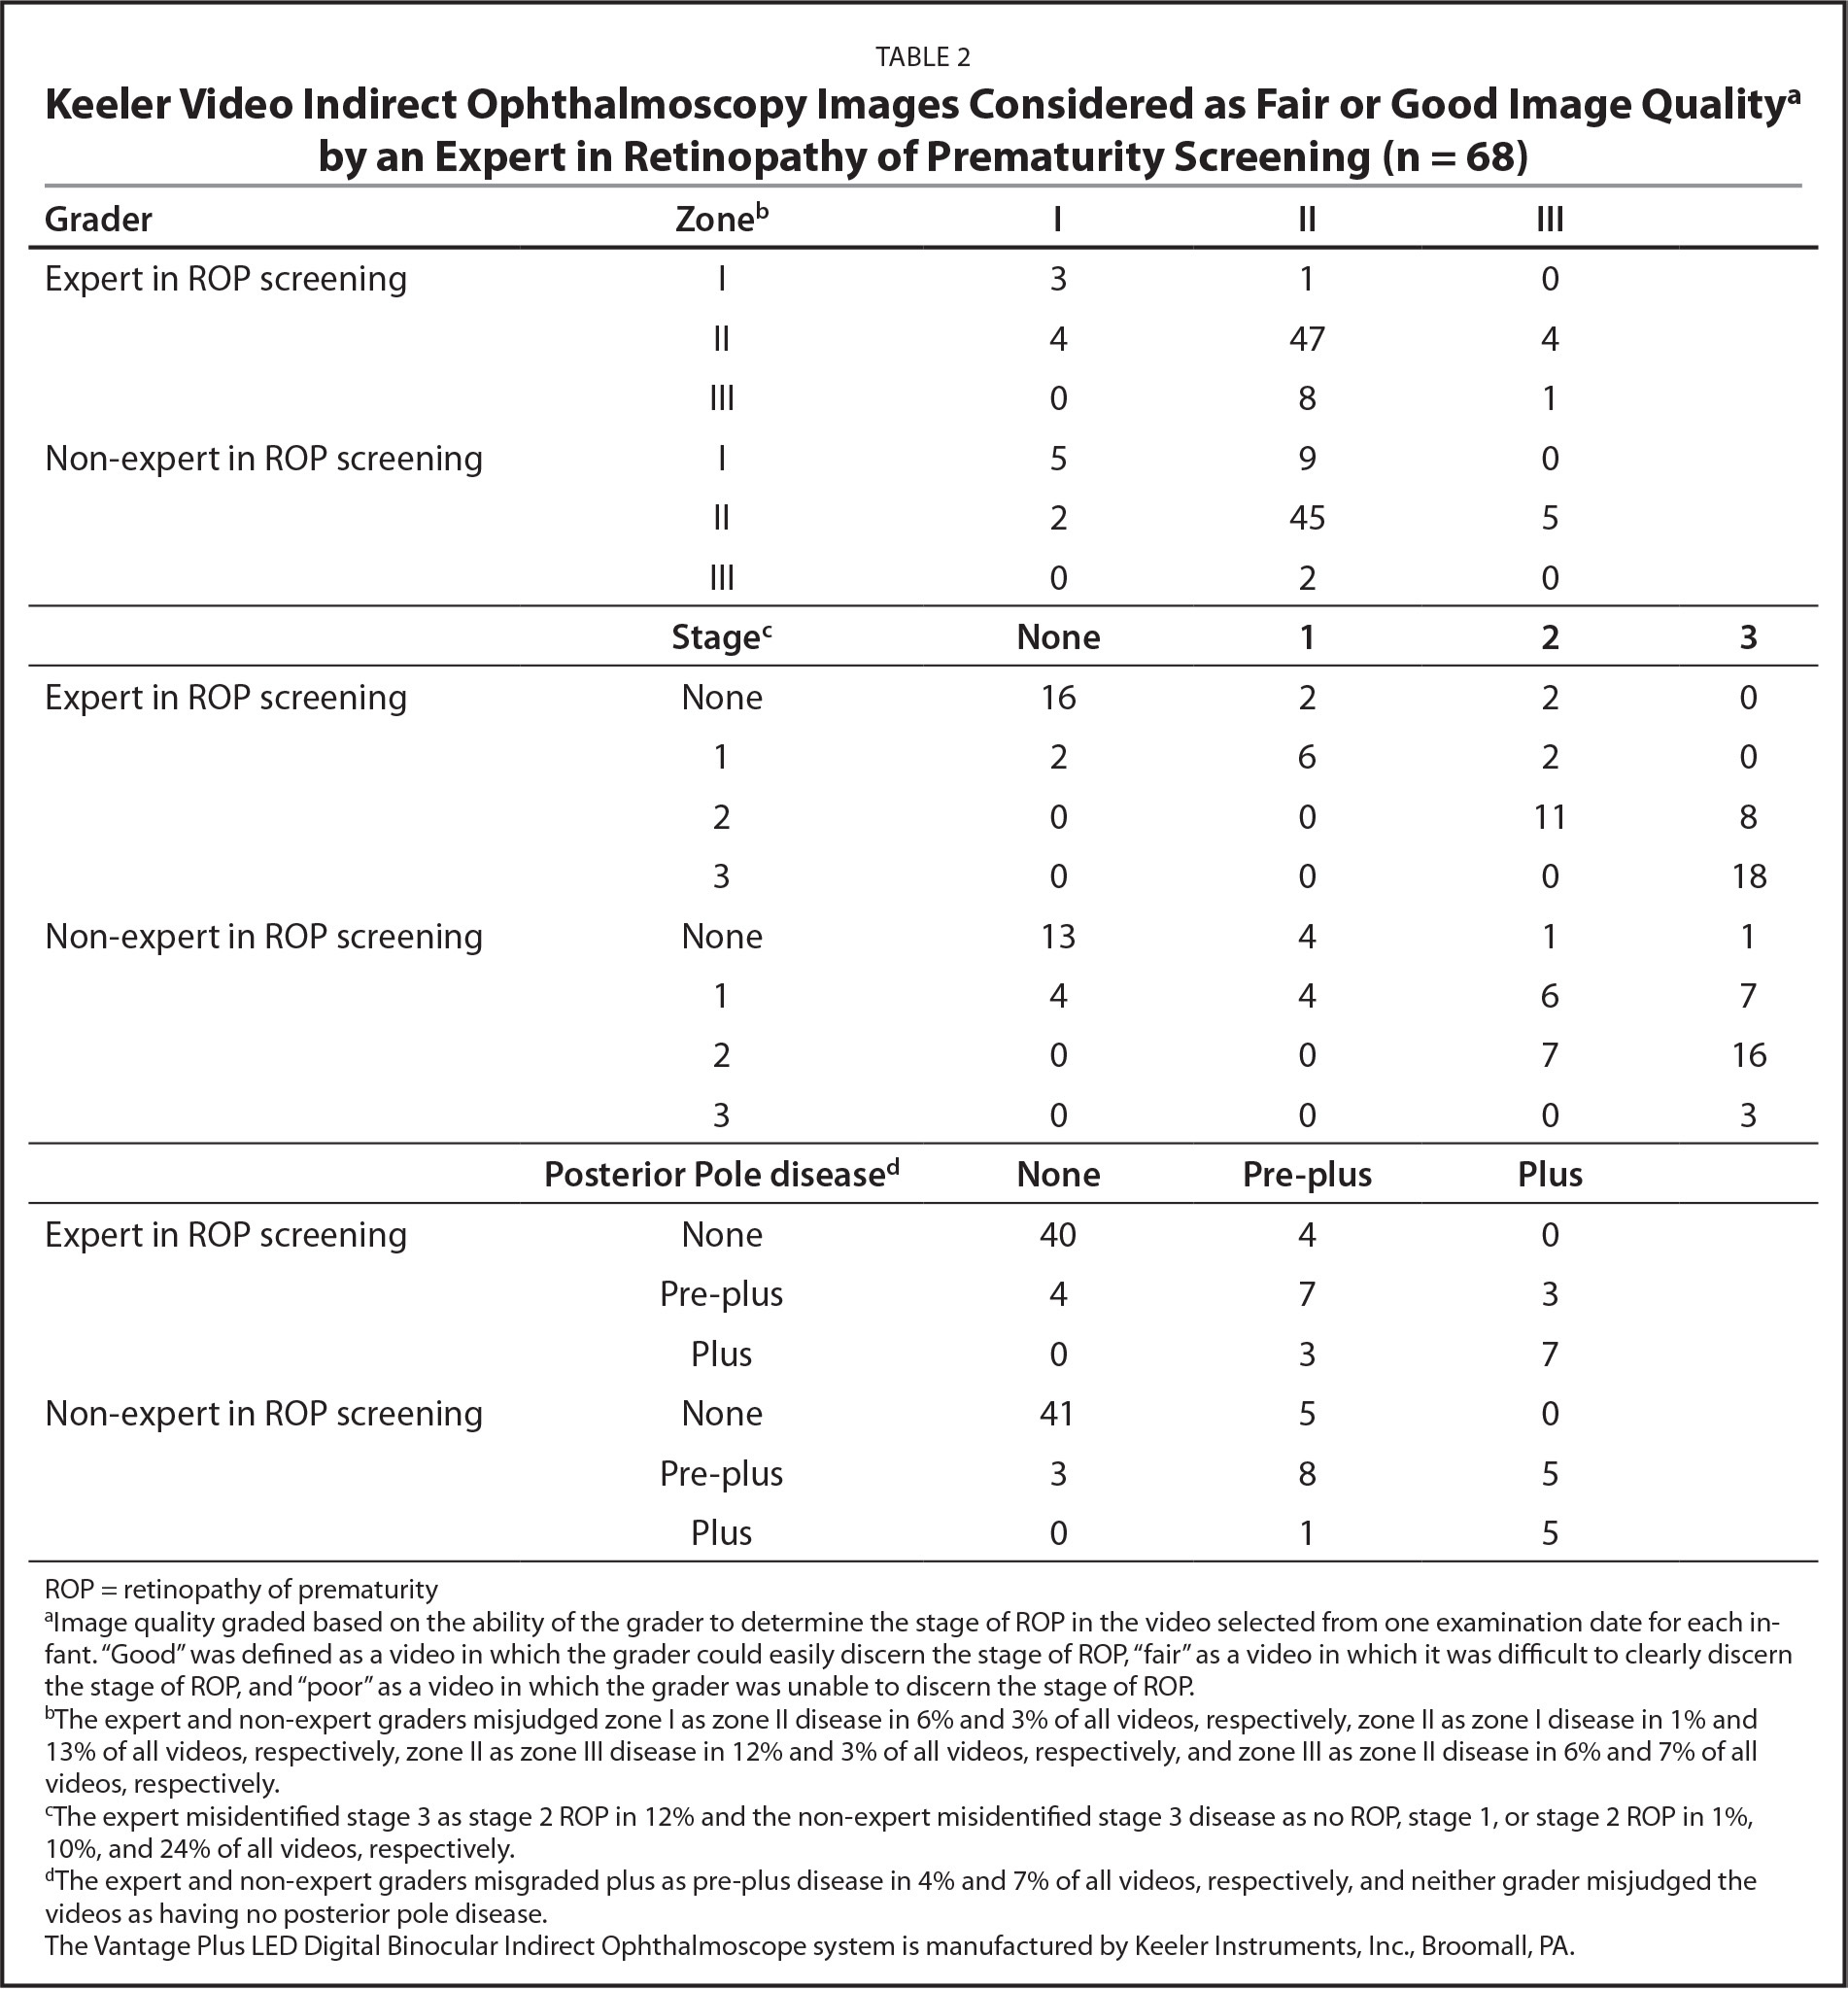 Keeler Video Indirect Ophthalmoscopy Images Considered as Fair or Good Image Qualitya by an Expert in Retinopathy of Prematurity Screening (n = 68)